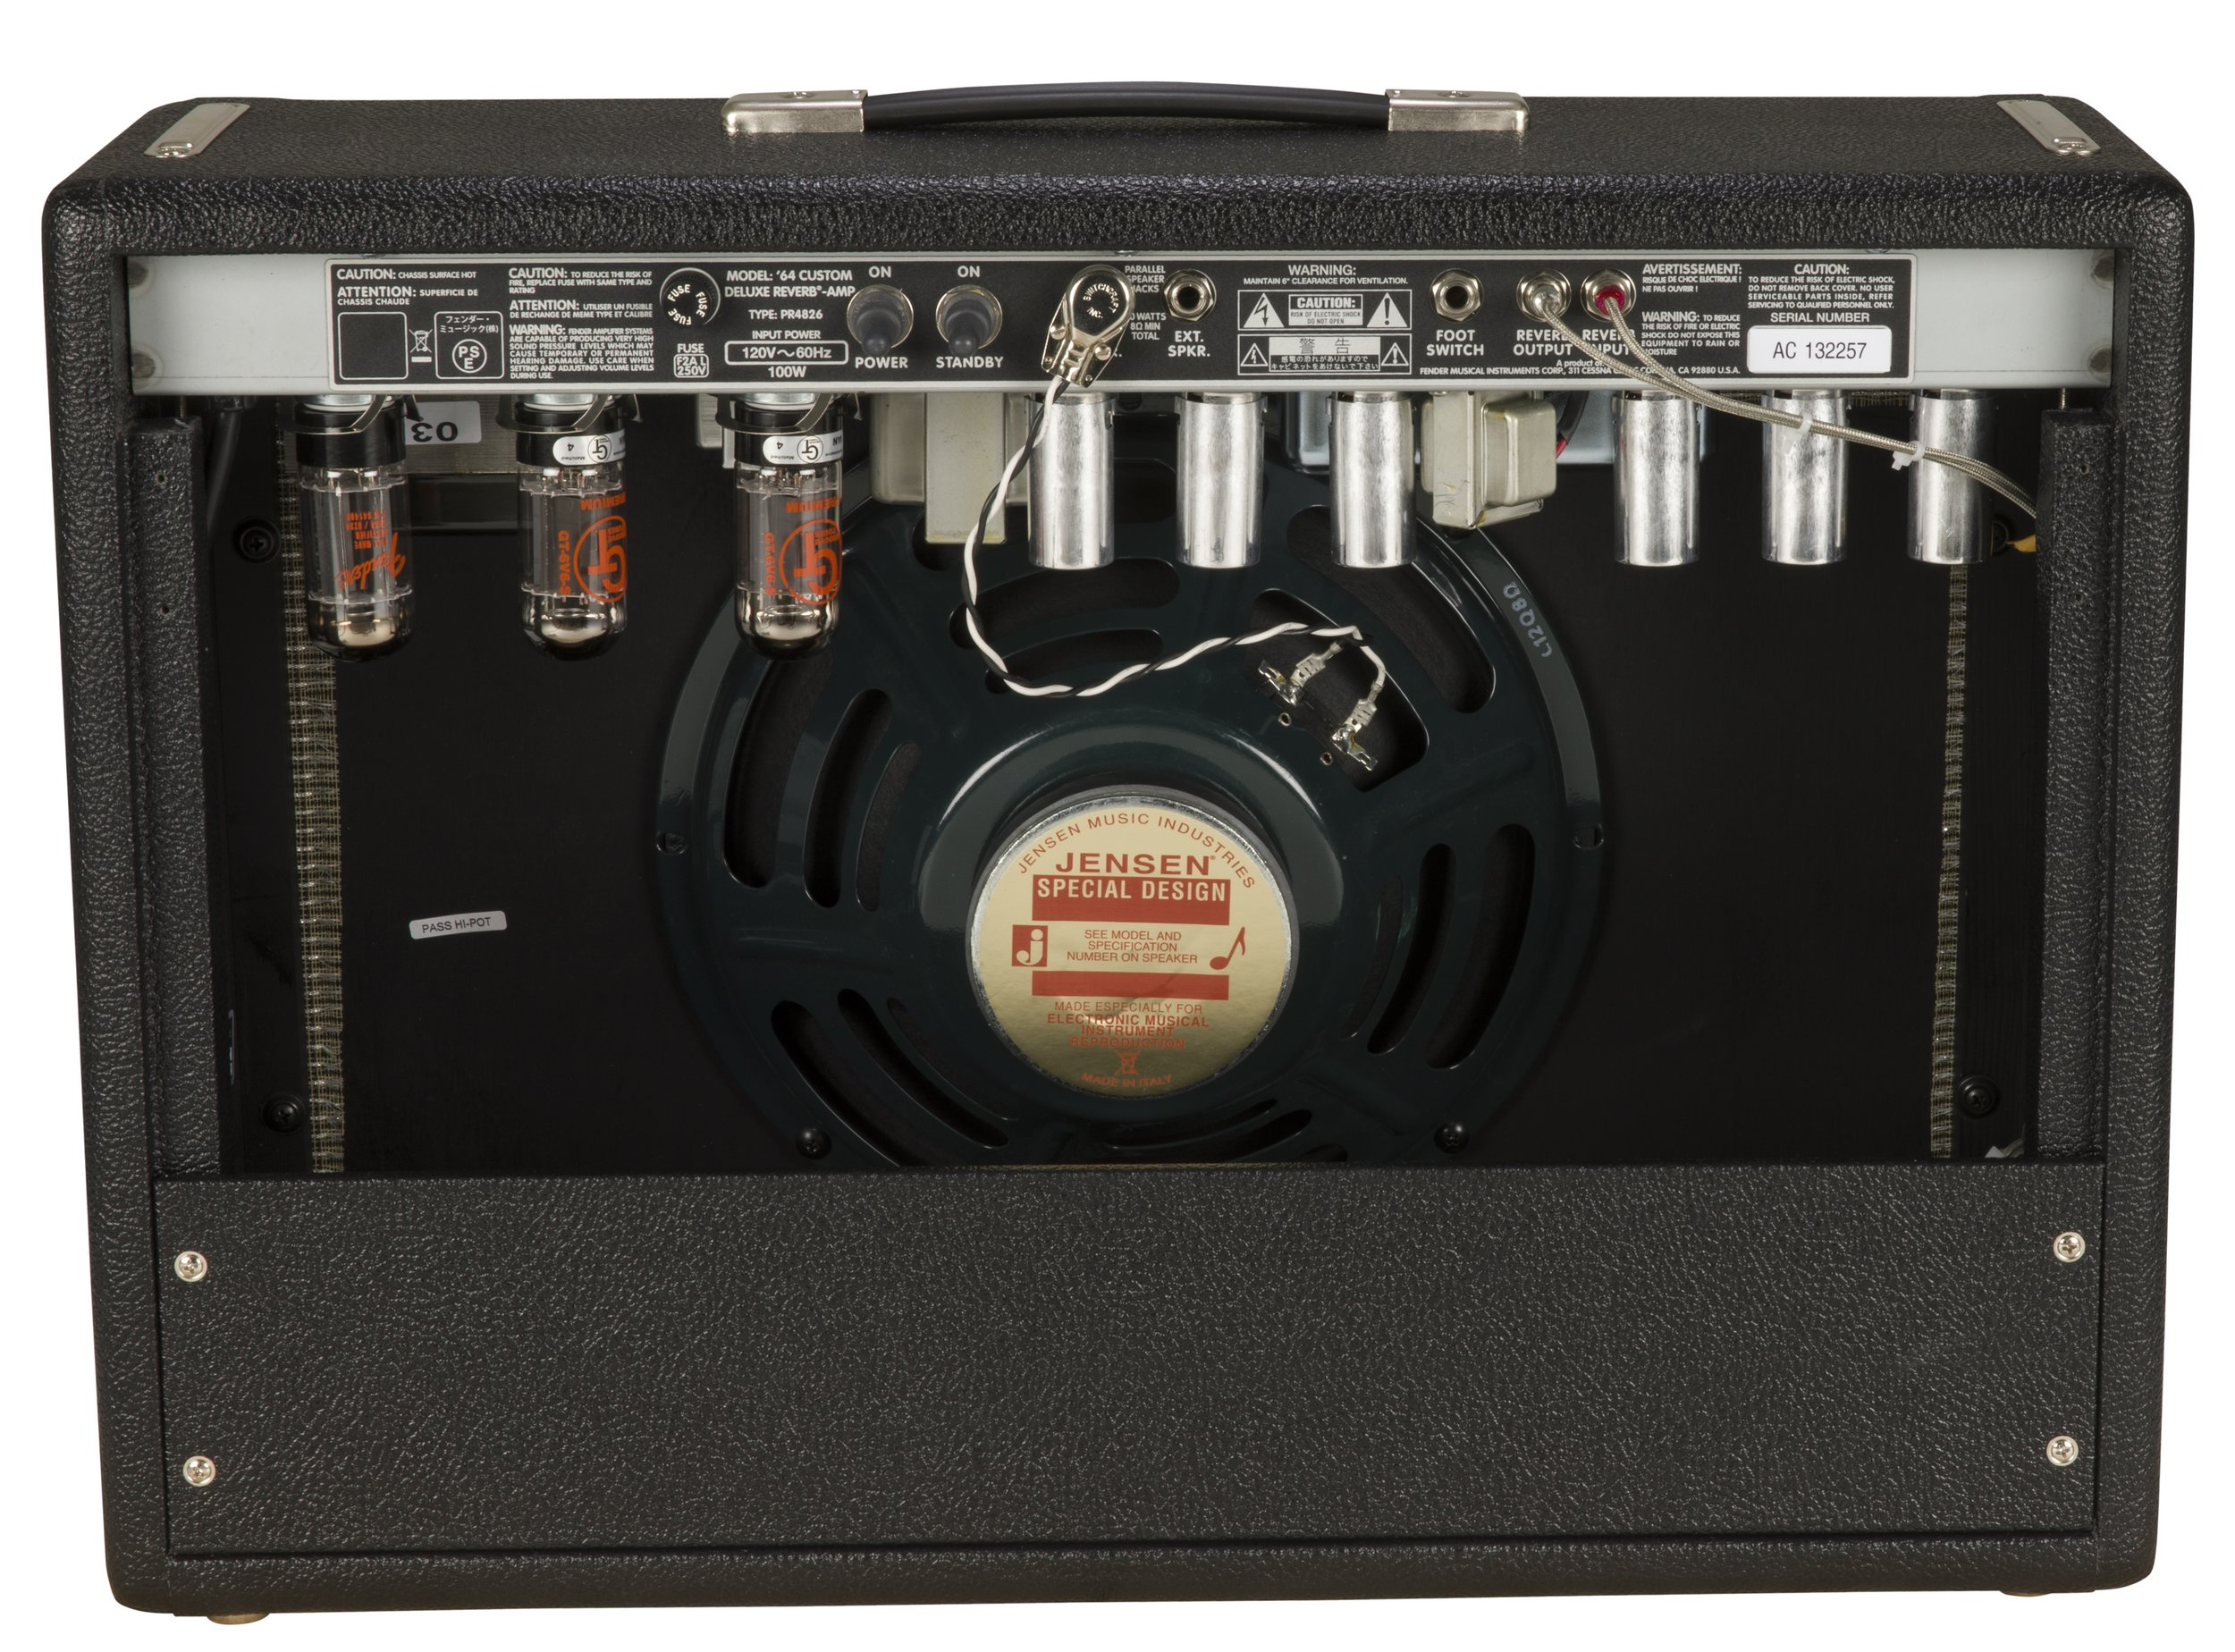 Behind the scenes view of a Fender Deluxe Reverb